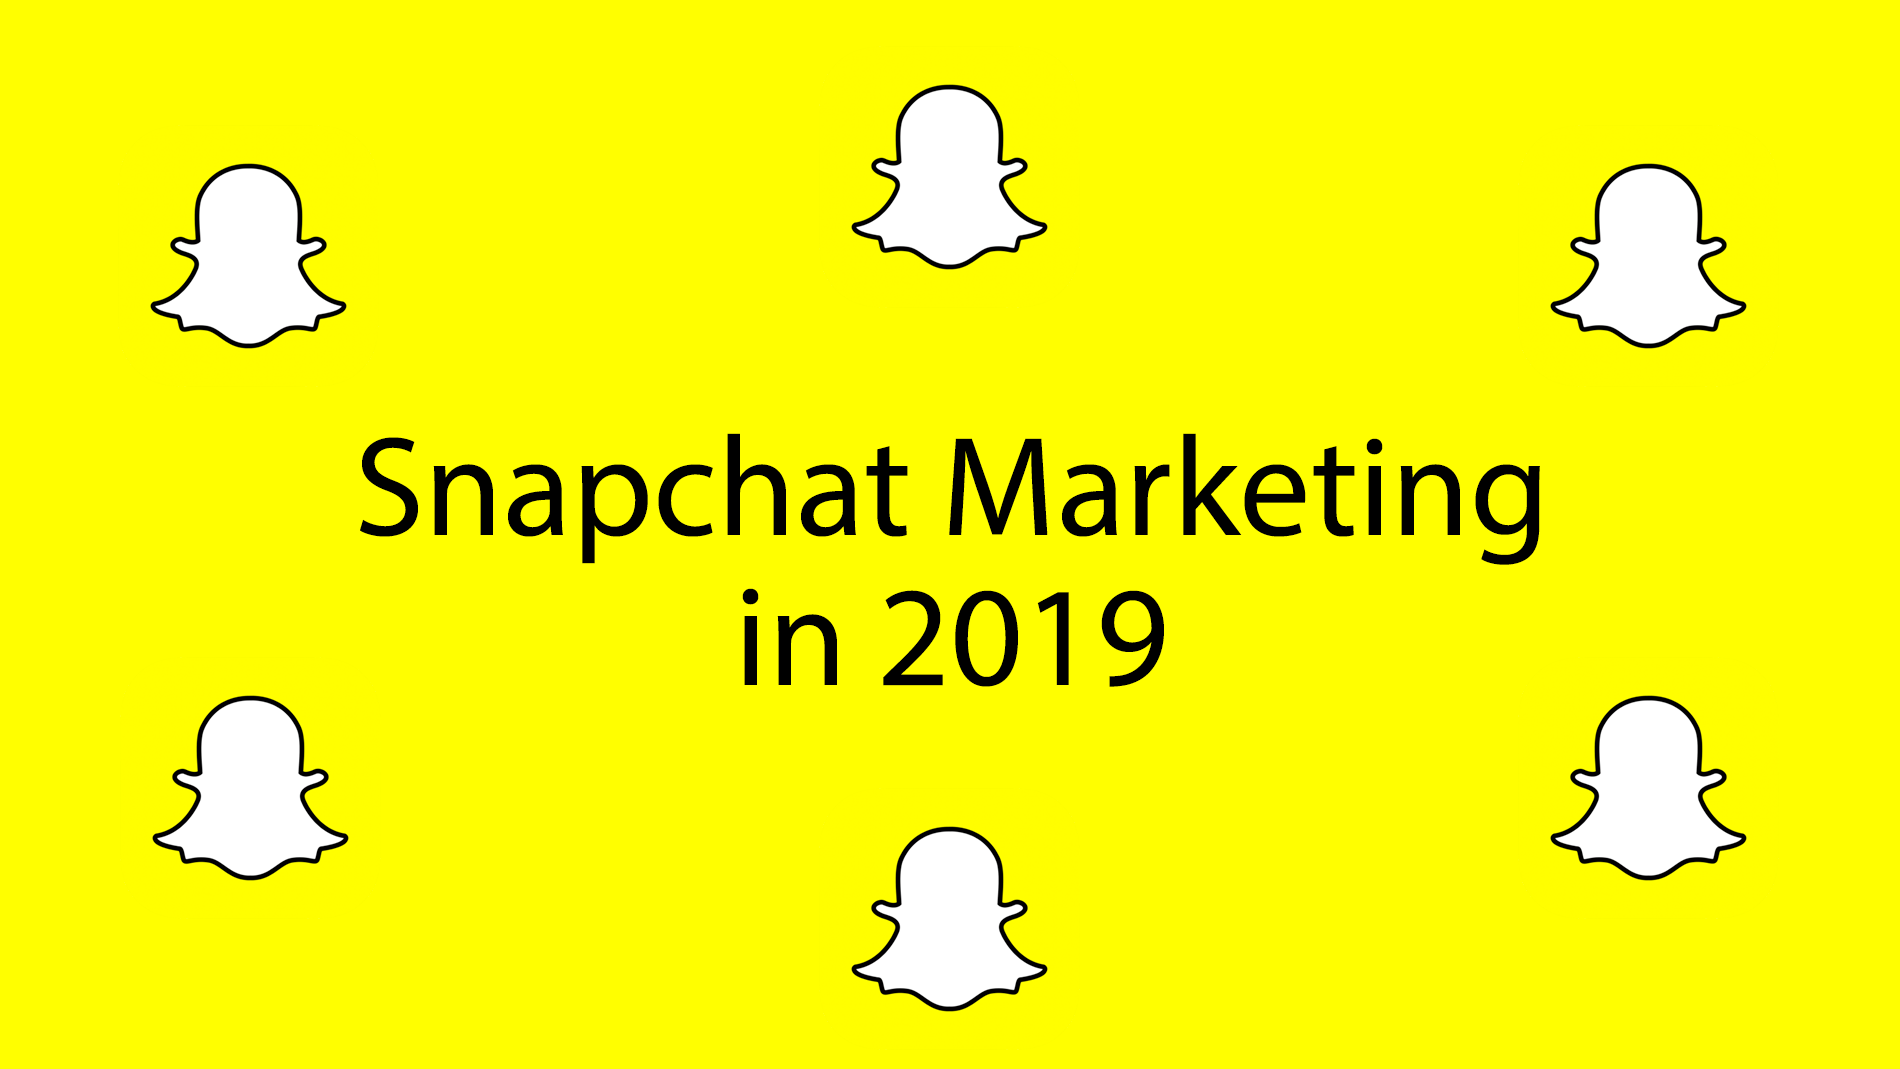 blogs-snapchat-marketing-in-2019-